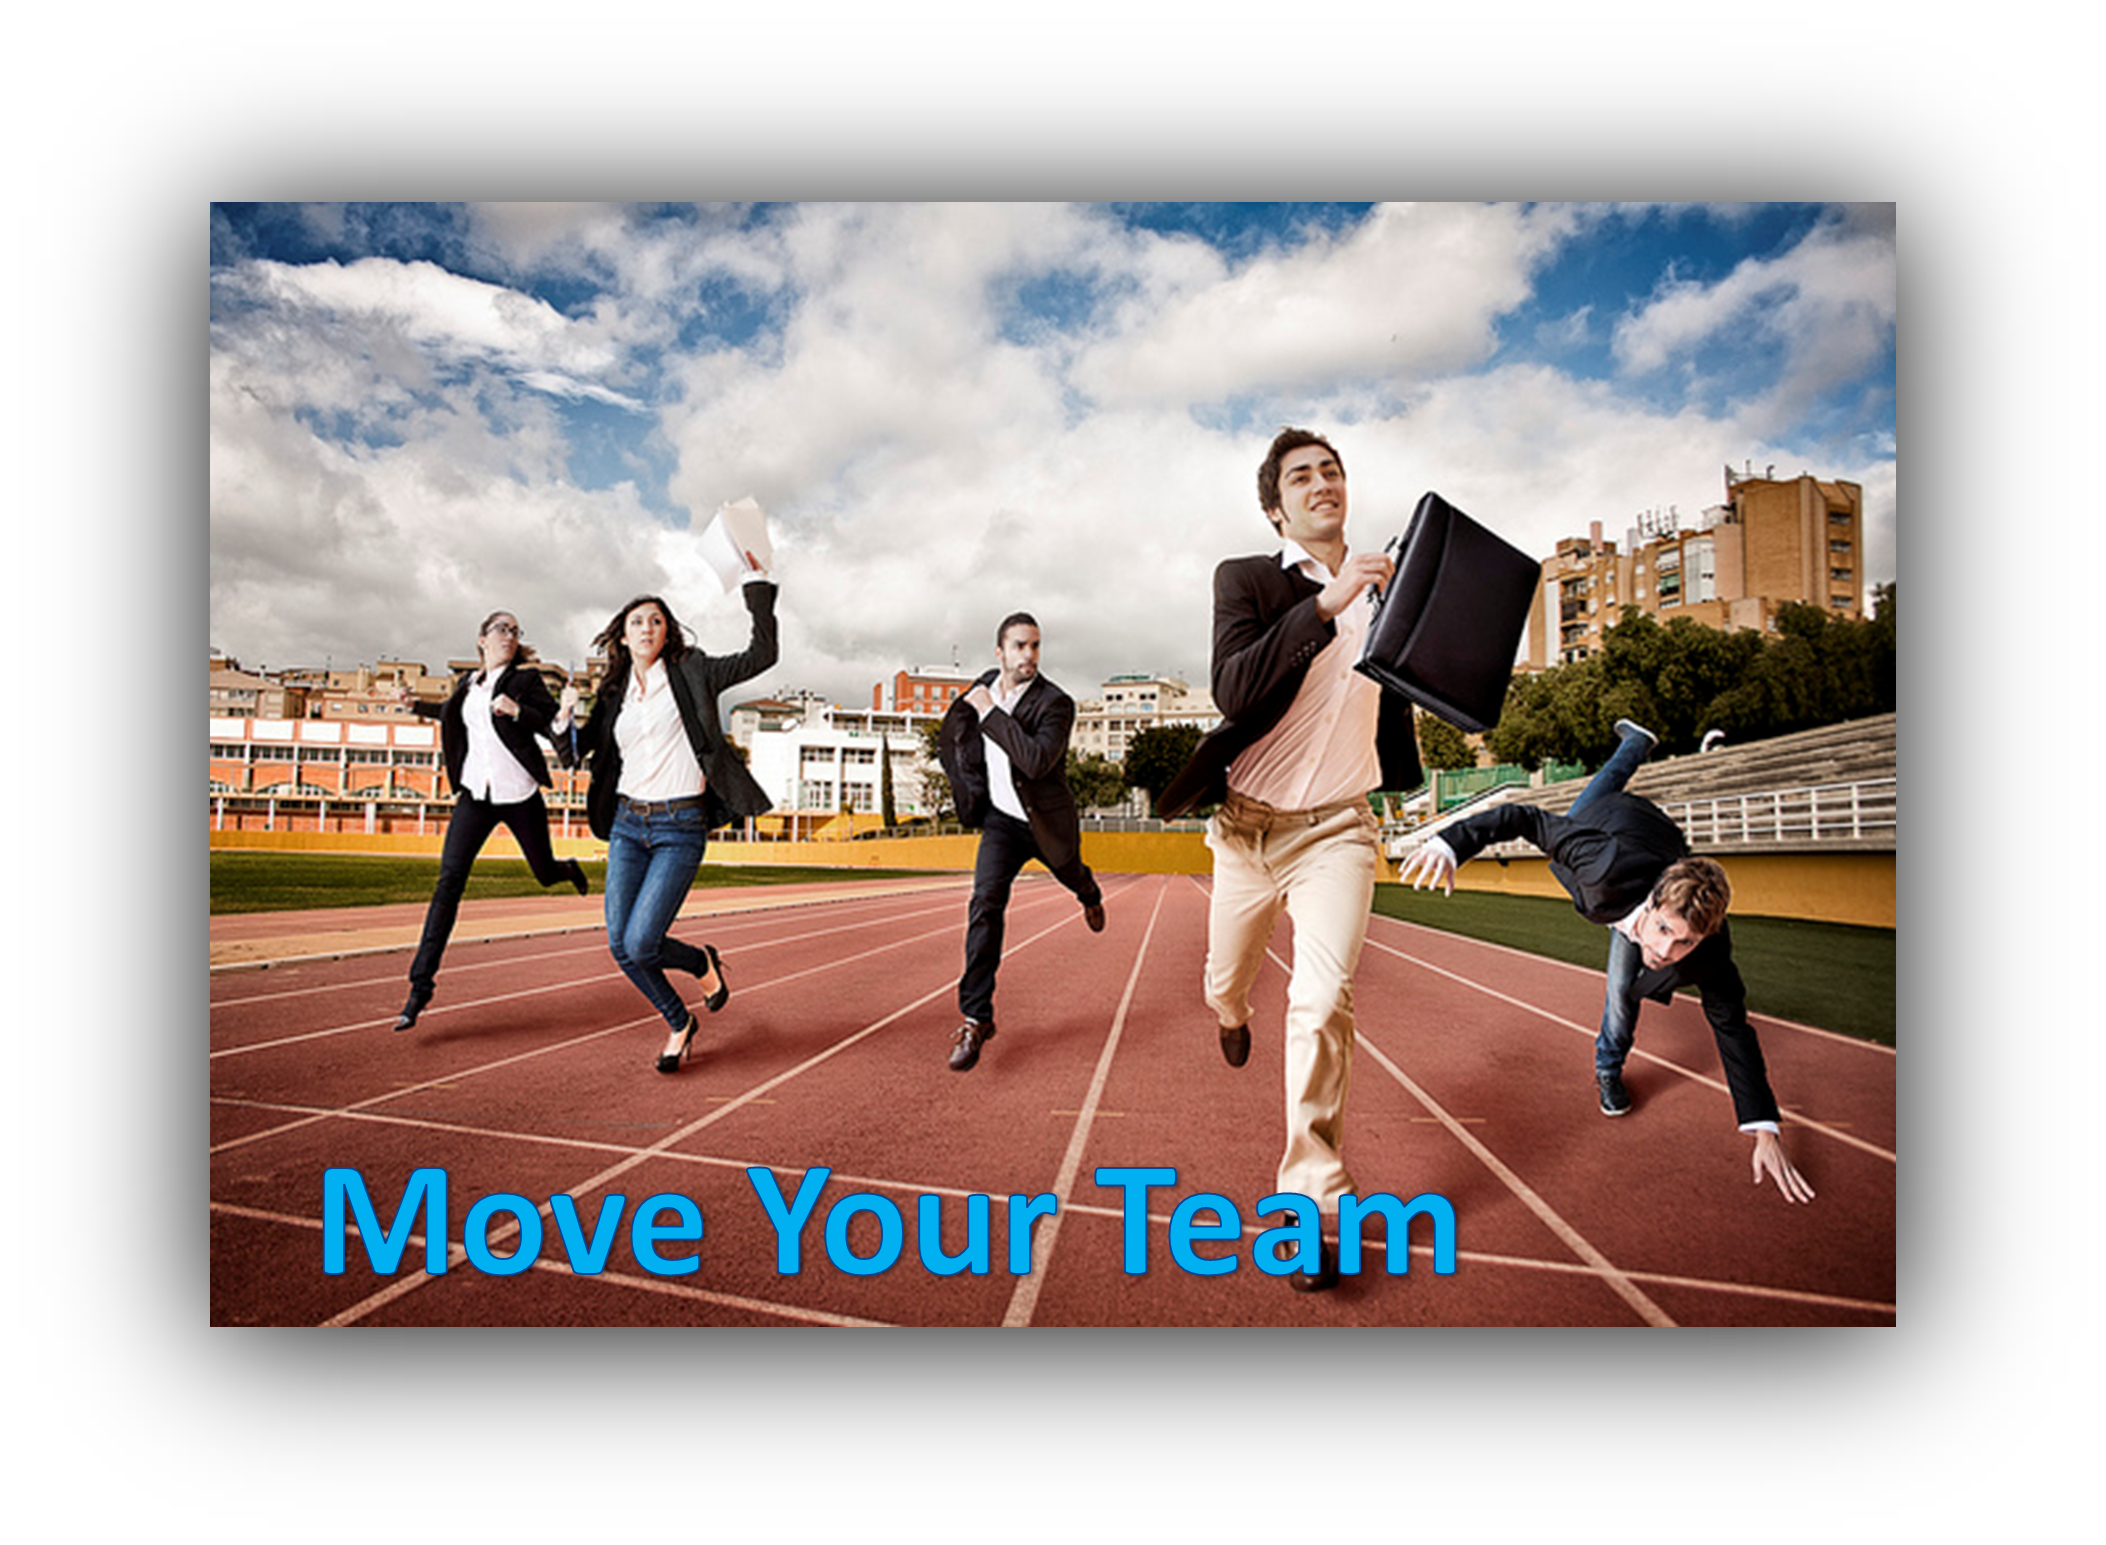 Move Your Team